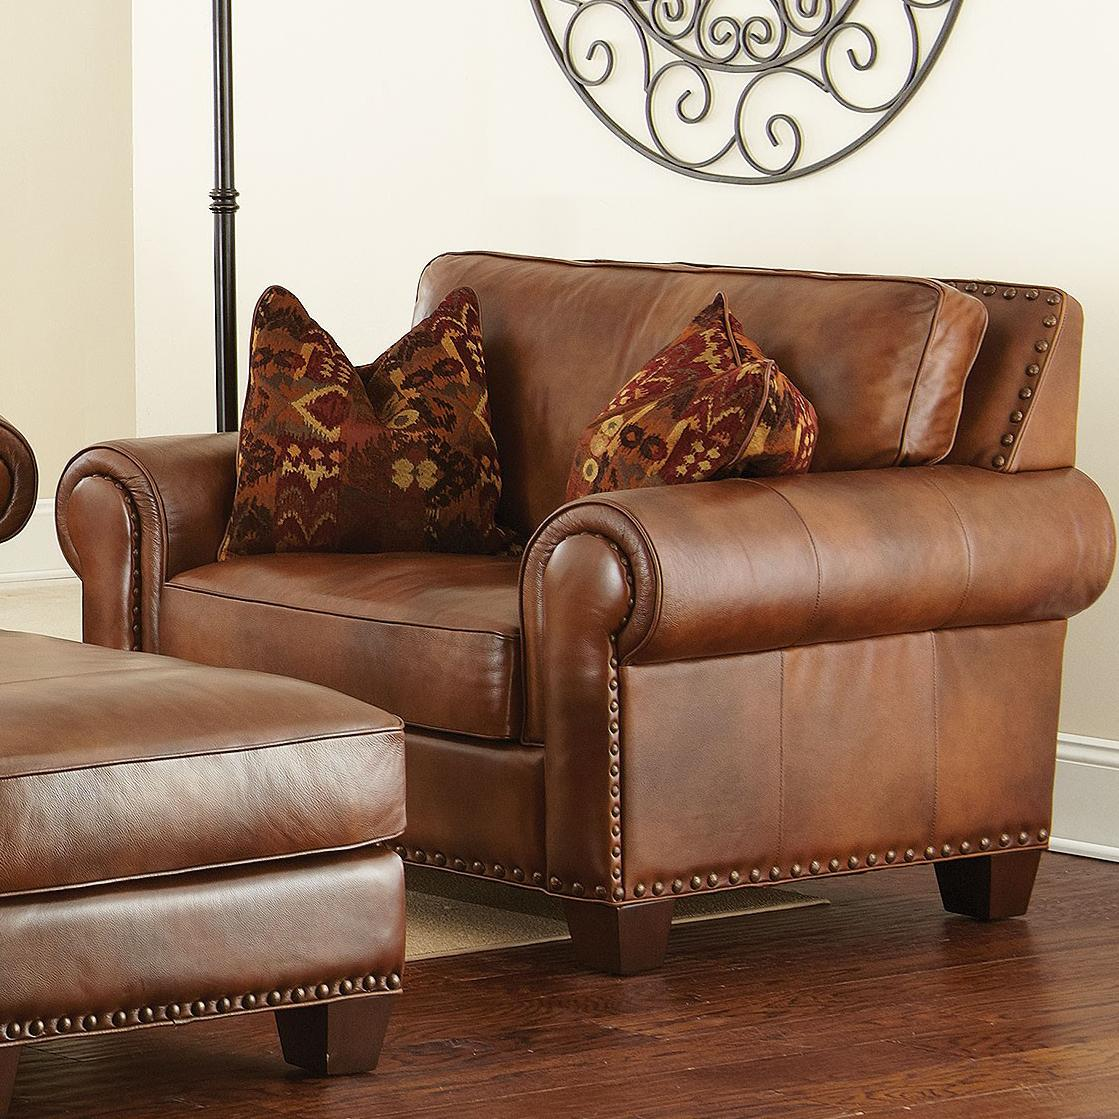 Rustic Leather Chairs Silverado Traditional Chair And A Half With Nailhead Trim By Vendor 3985 At Becker Furniture World